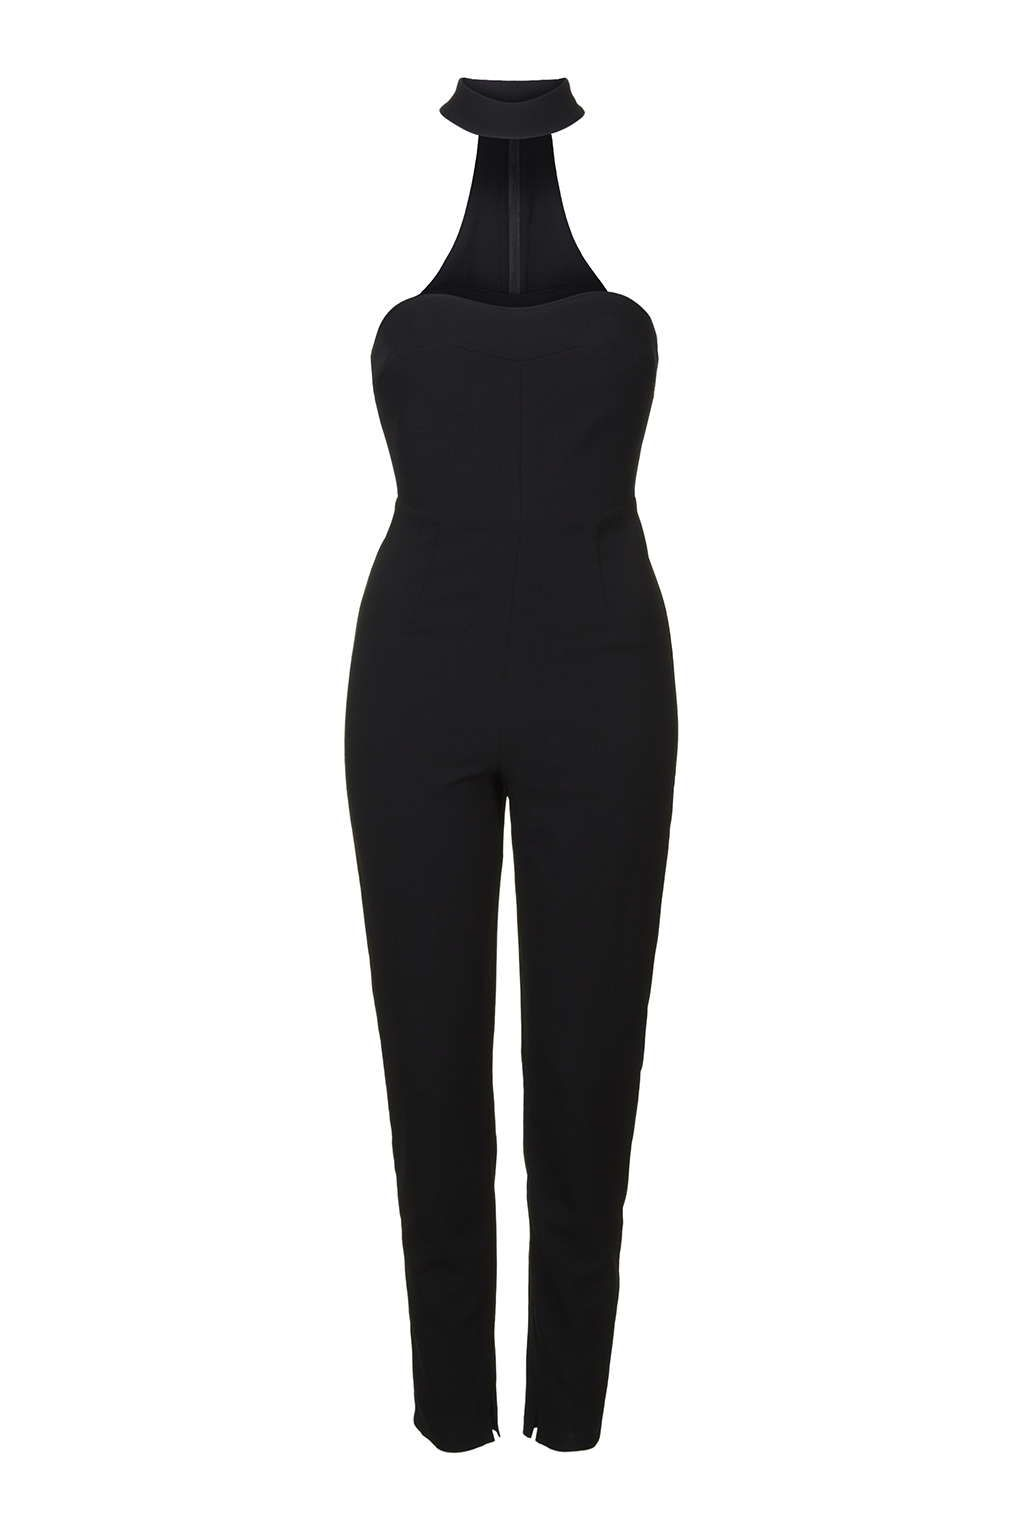 c94191a54c3 Cut-Out High Neck Jumpsuit By Kendall + Kylie at Topshop - Topshop ...